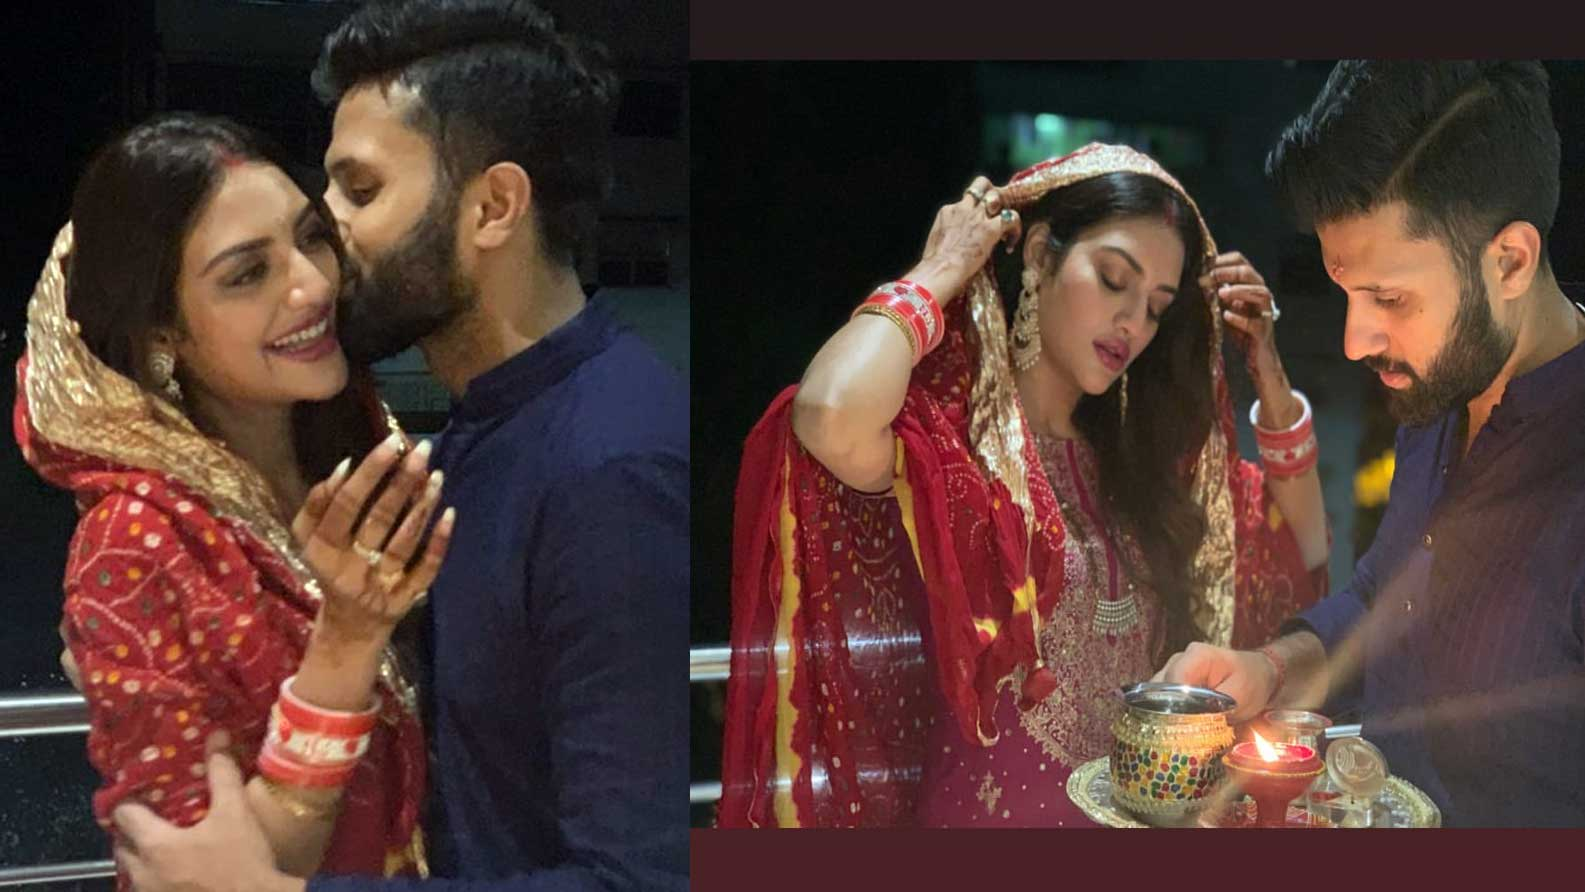 actress-turned-mp-nusrat-jahan-celebrated-her-first-karwa-chauth-with-hubby-nikhil-jain